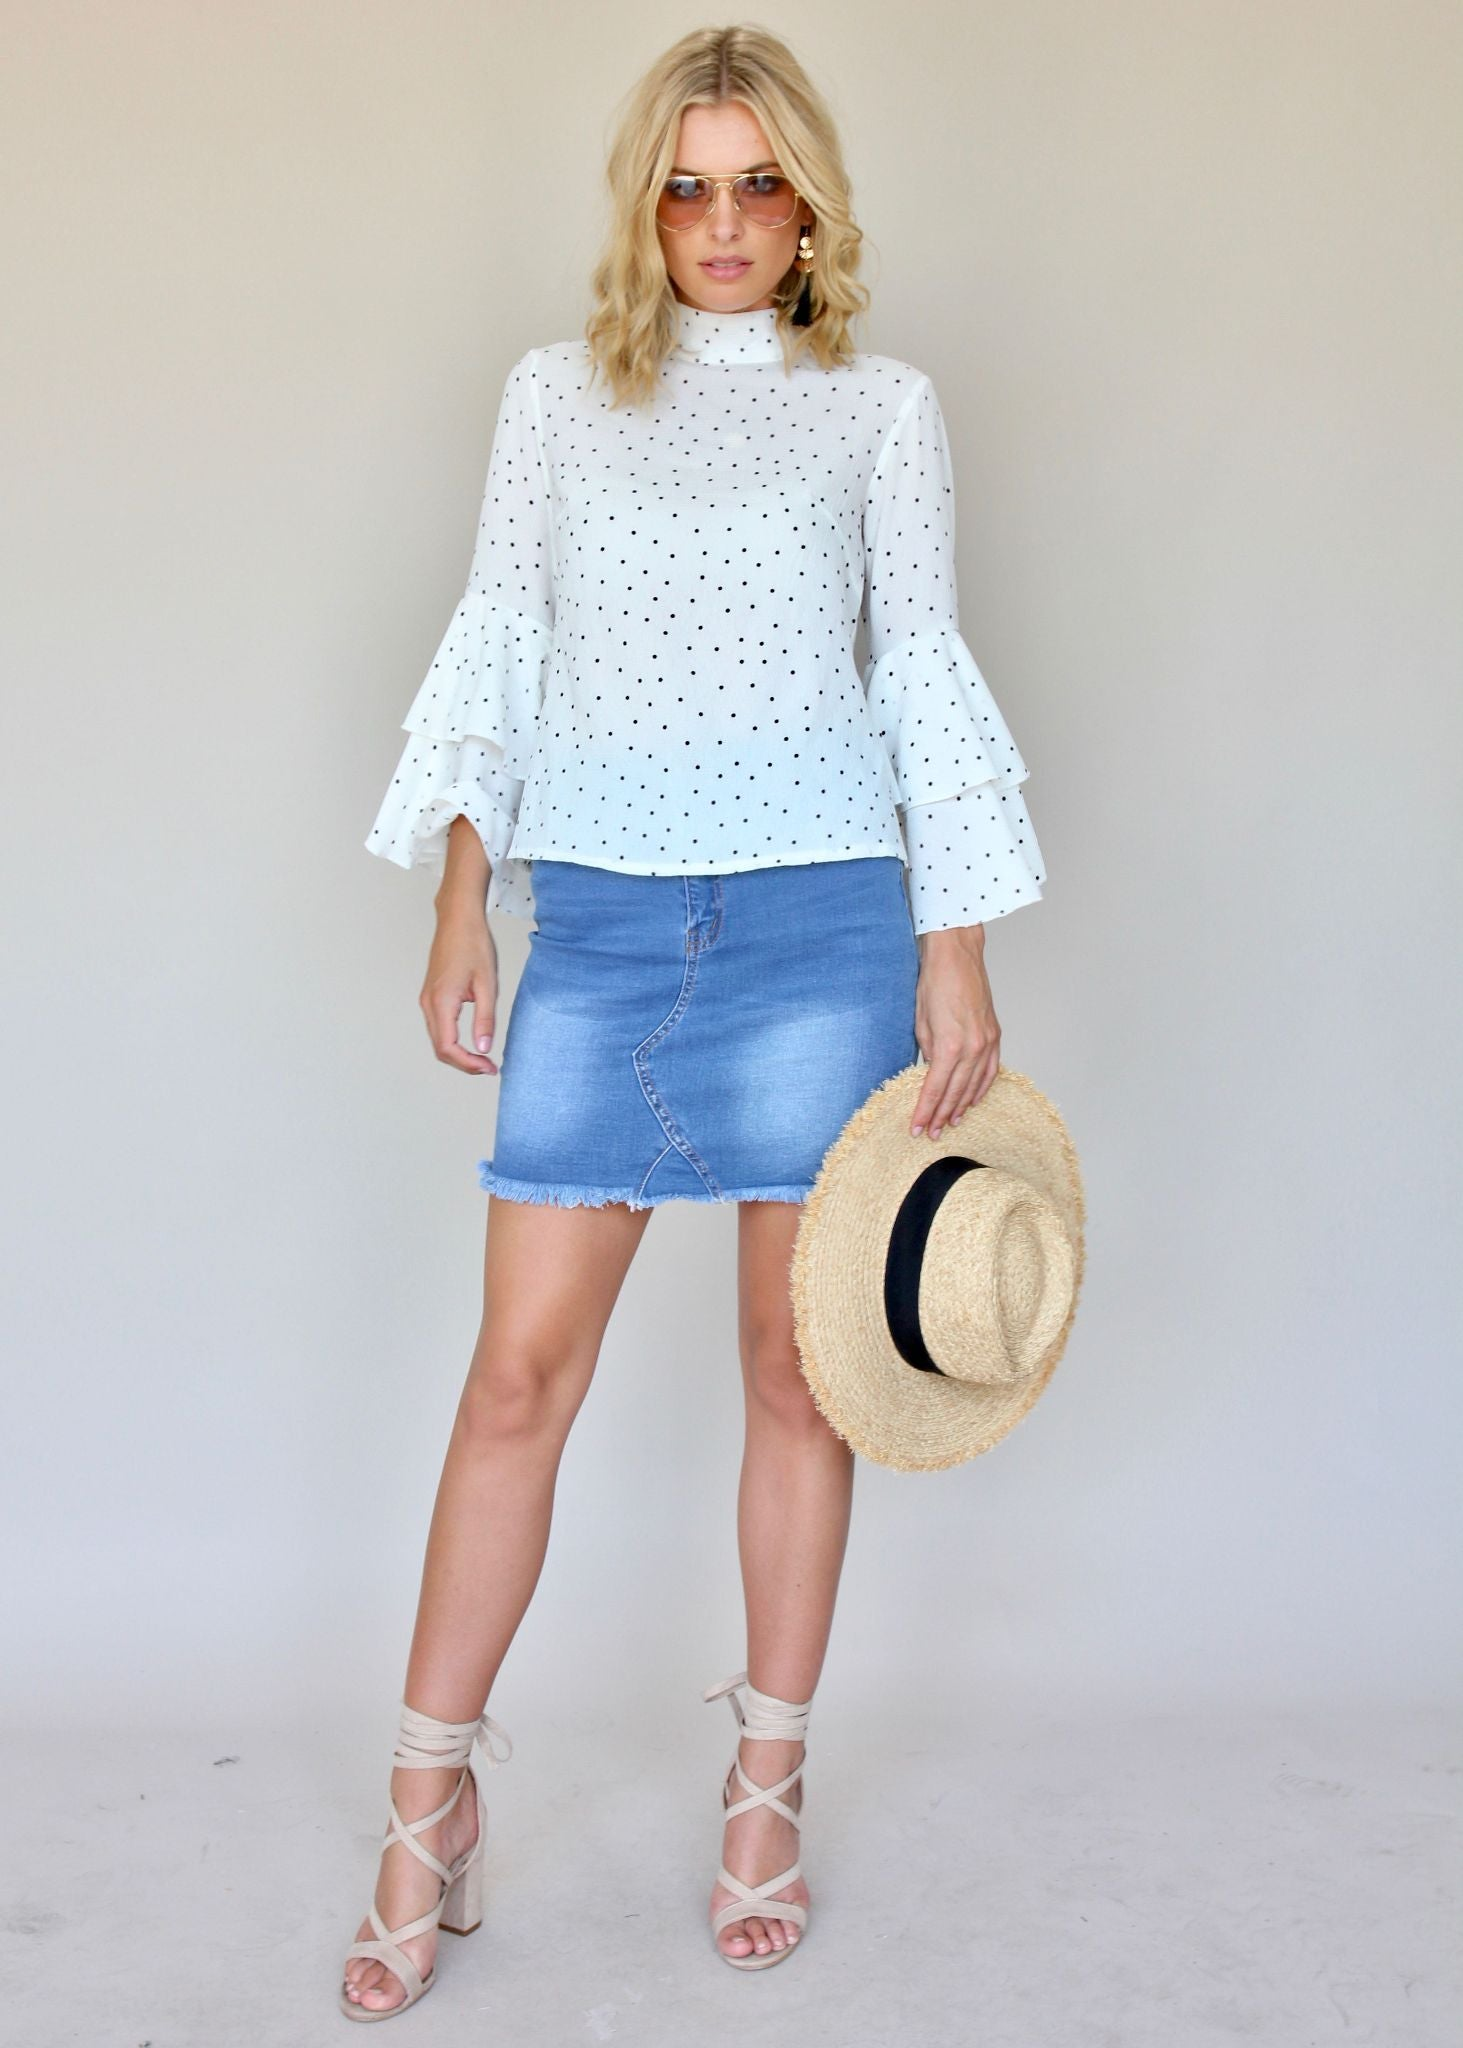 Unite Us Blouse - White Polka